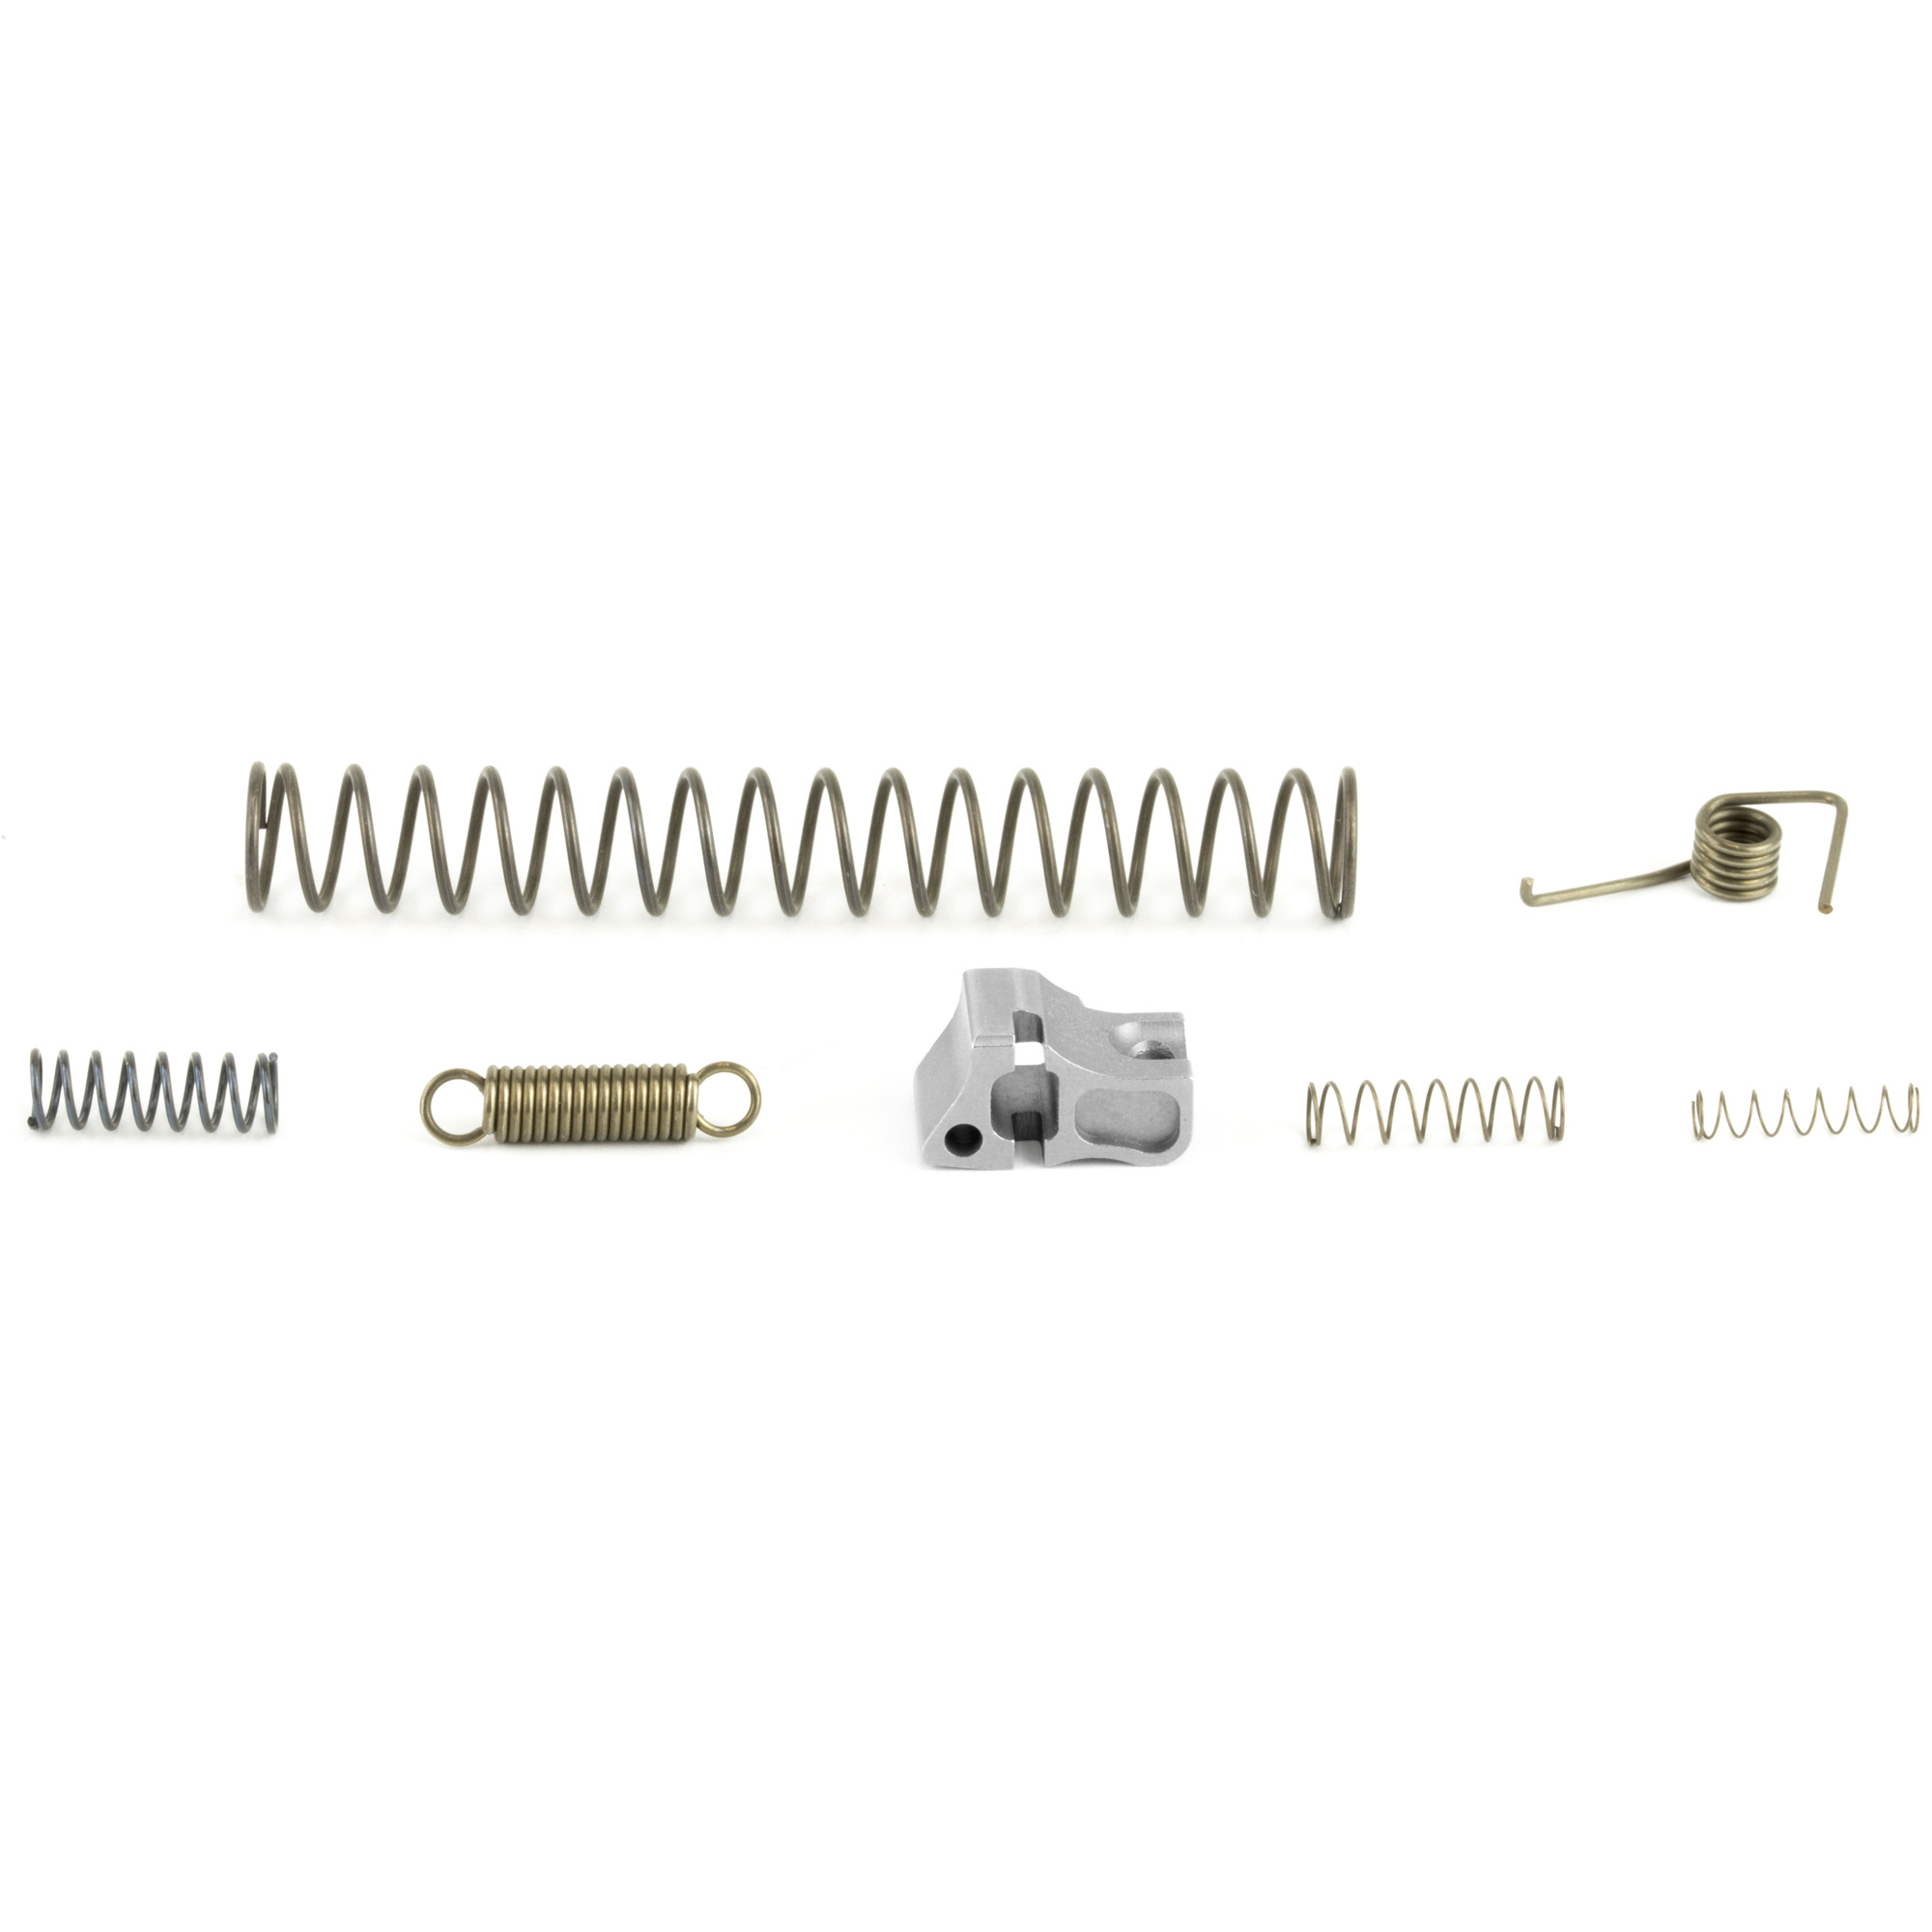 This Trigger Spring Kit with Sear for the XDS & XDS Mod2 will lower the pull weight and smooth out the feel of the trigger. (Designed to work on XDS pistols that are manufactured post recall or that have had the recall work performed on them.)